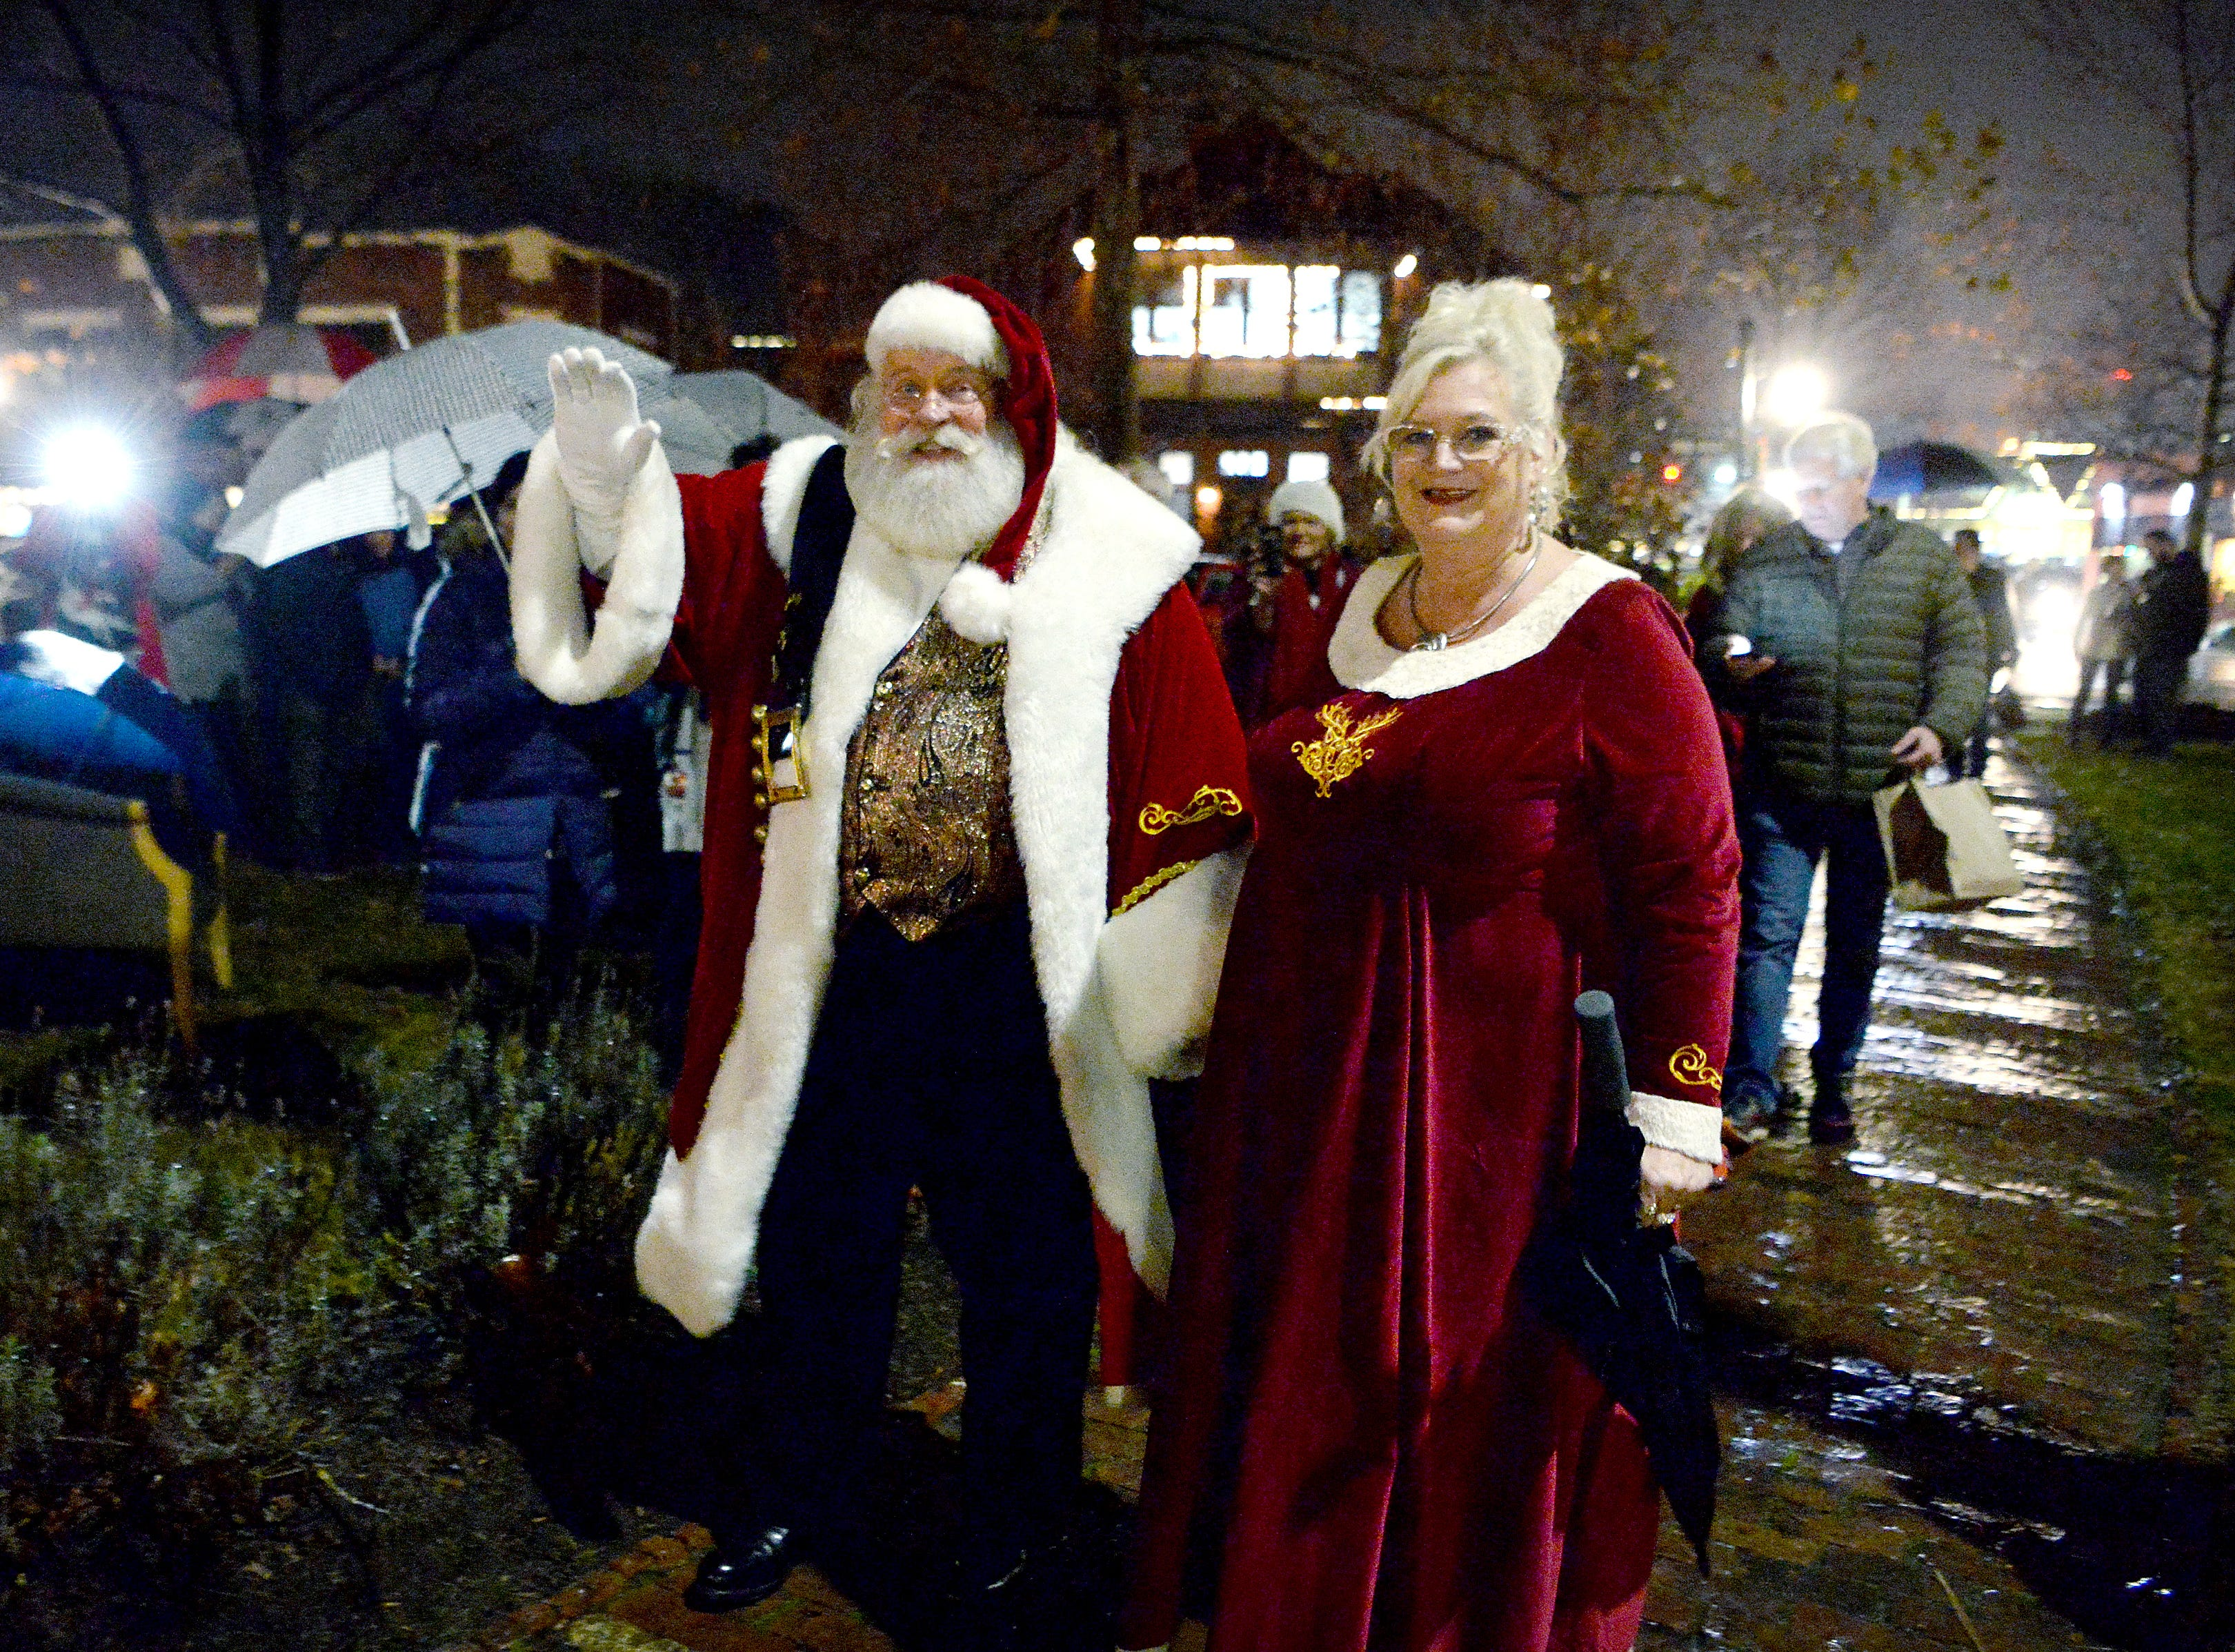 Santa and Mrs. Claus arrive at the 30th annual Biltmore Village Dickens Festival for the tree lighting on Nov. 30, 2018.